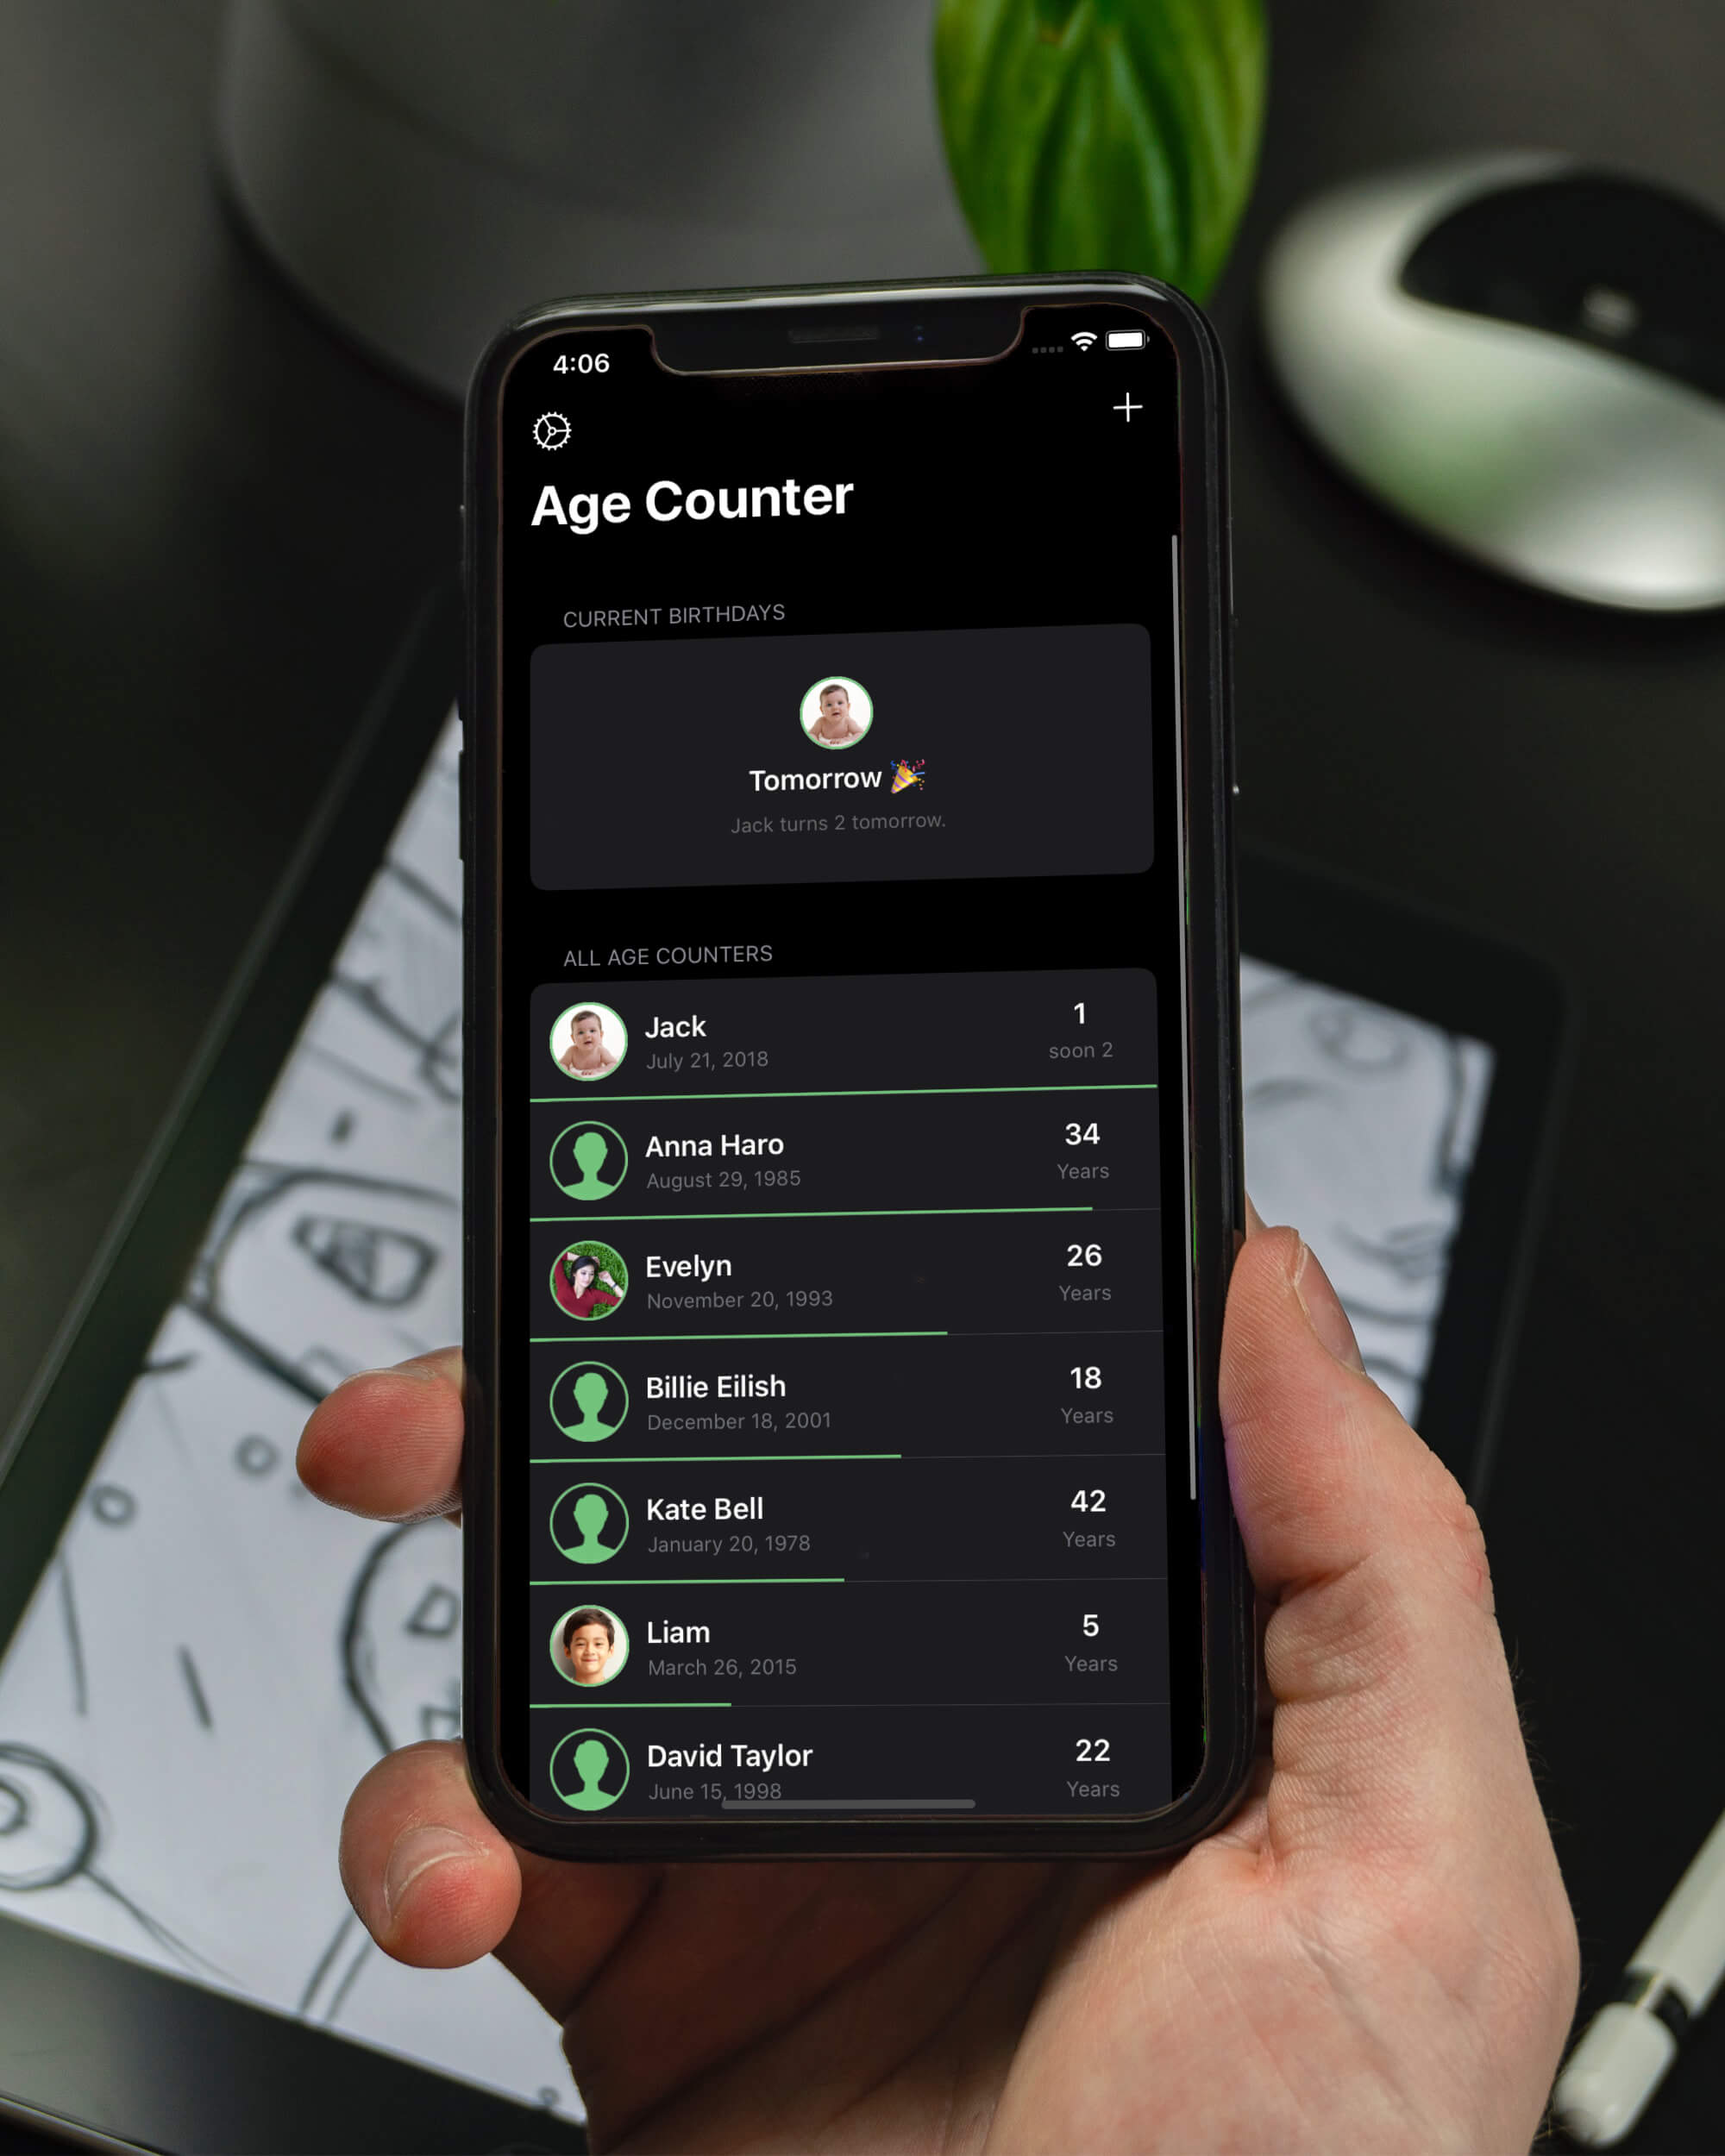 Age Counter using dark mode